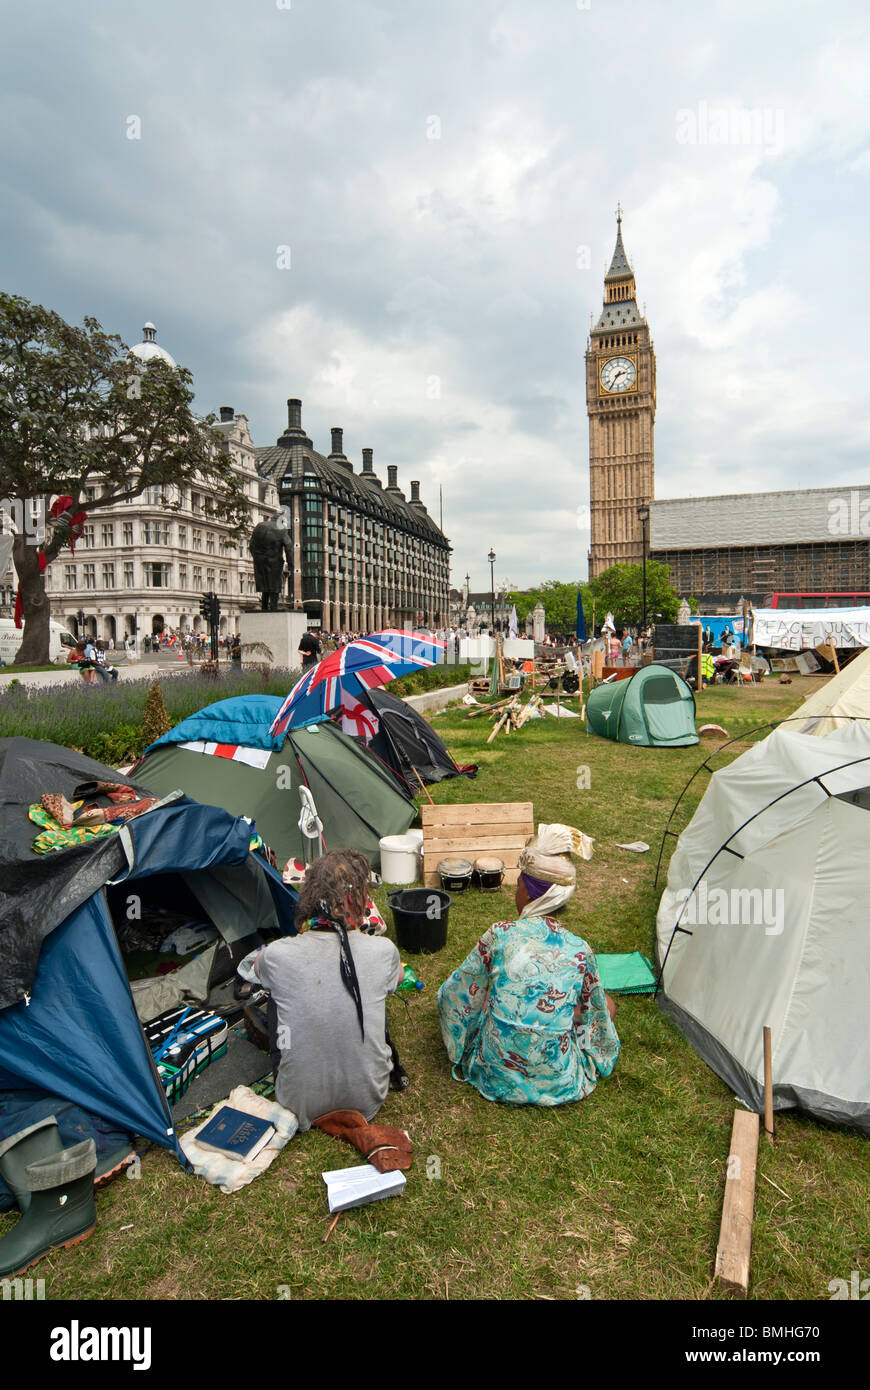 PEACE ACTIVISTS TENTS  IN FRONT OF PARLIAMENT SQUARE - Stock Image